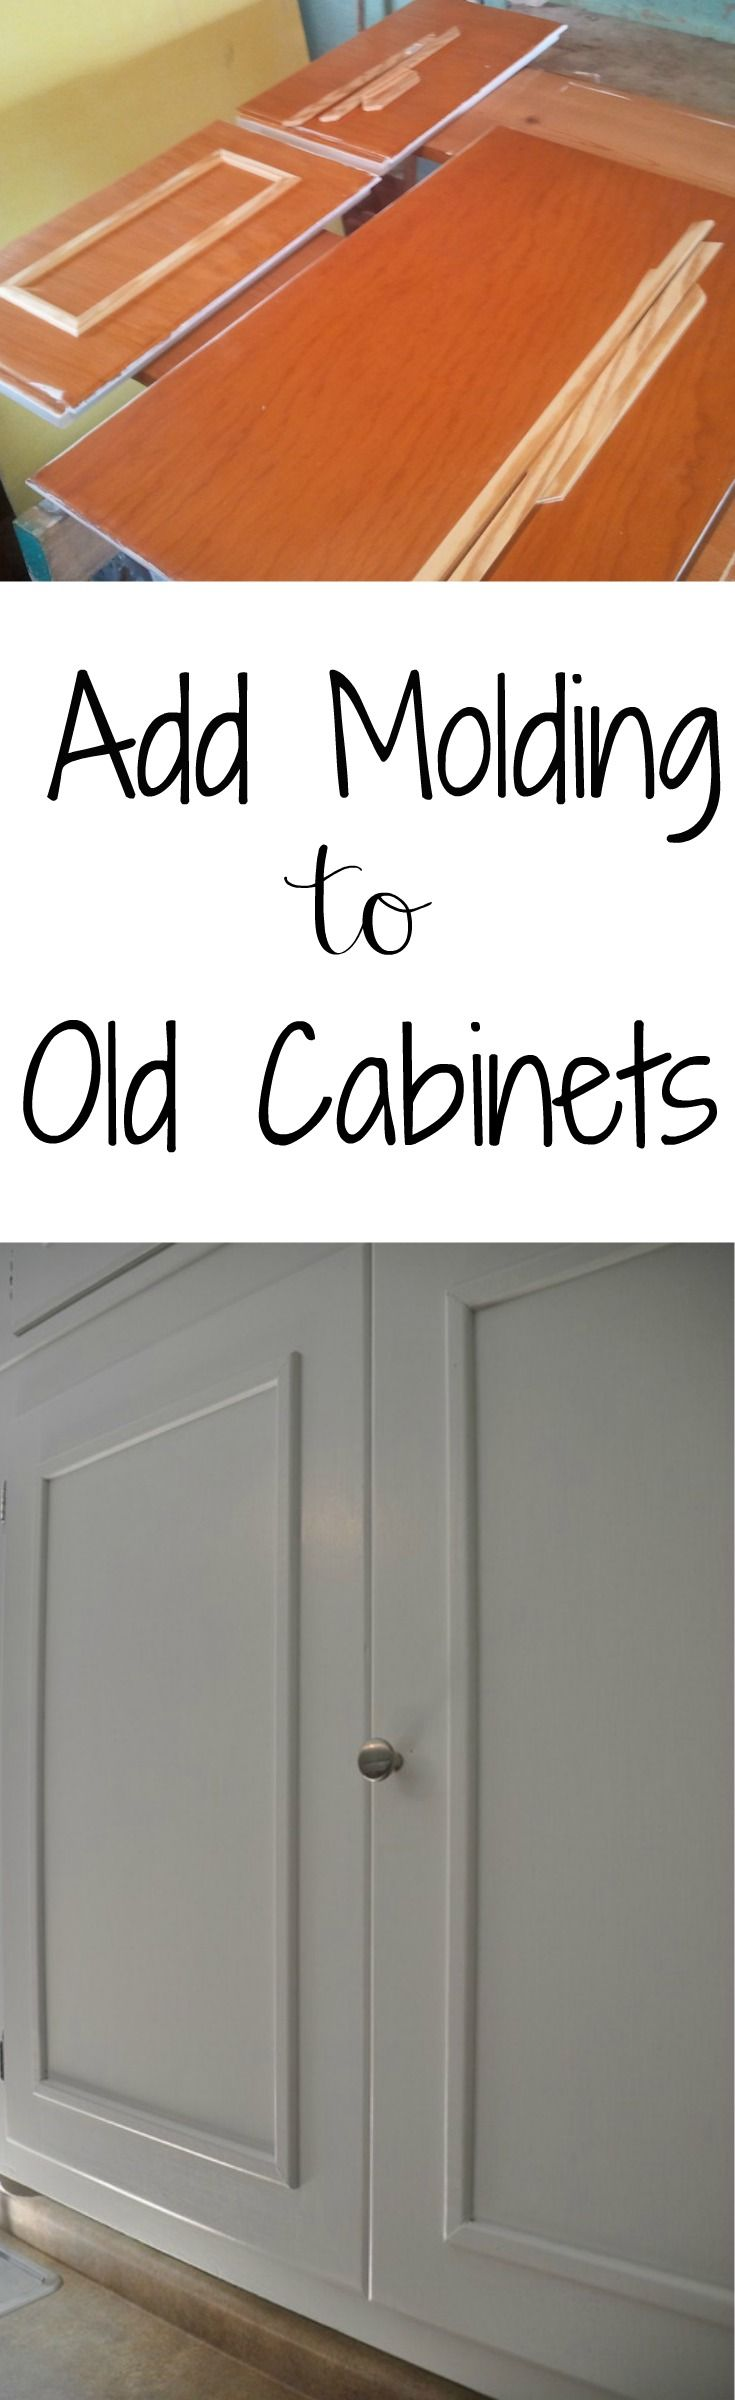 Add Molding To Old Cabinets. Great Way To Update Dated Kitchens! This Would  Work Great At Rental Property Kitchen On The Now Plain Cabinet Doors. Looks  Easy